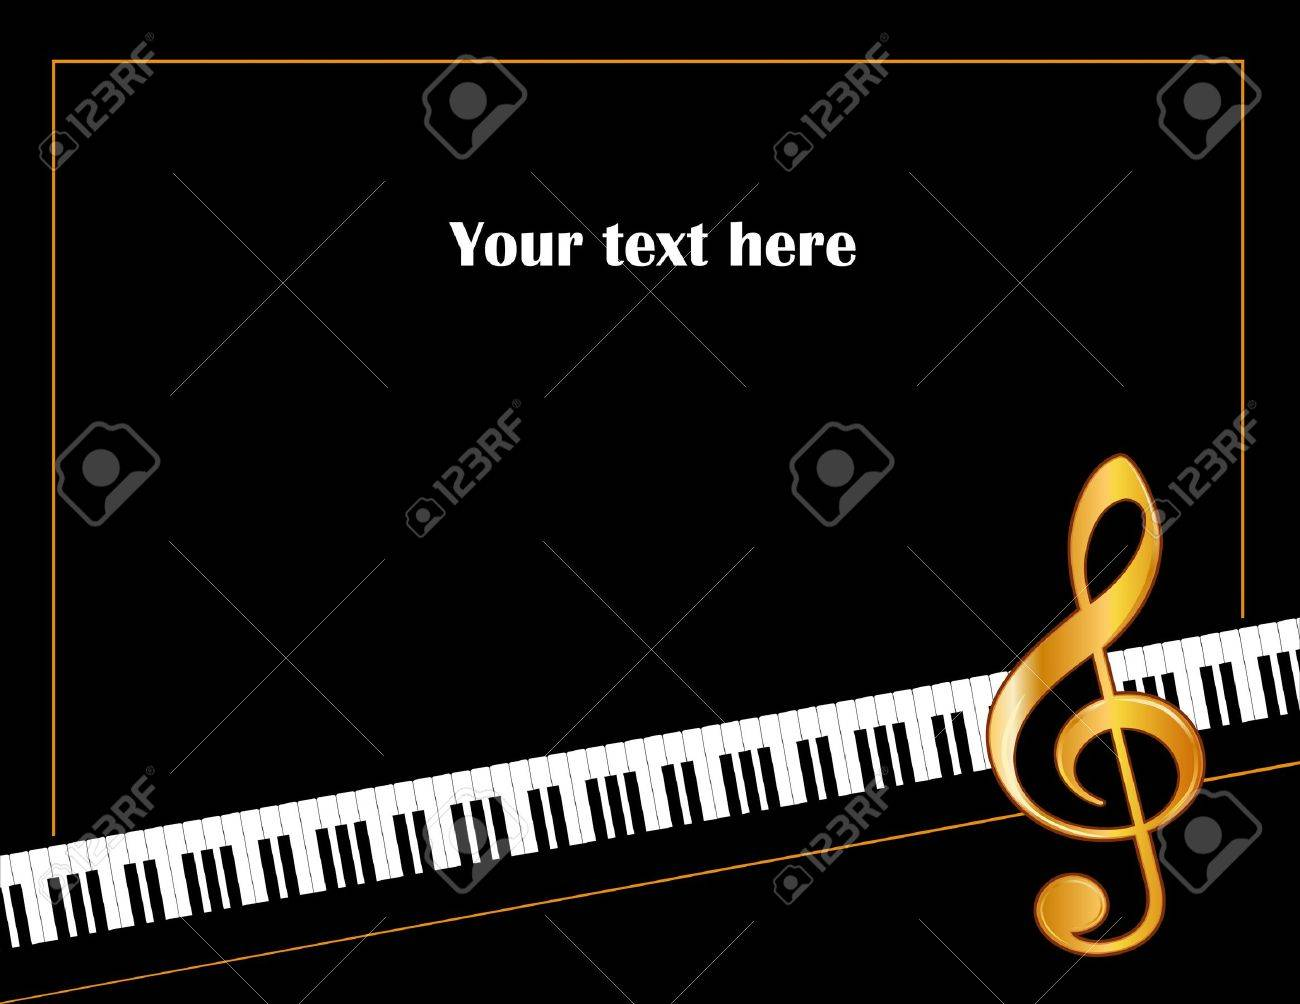 Music Entertainment Event Poster Frame, piano keyboard, golden treble clef, horizontal. Stock Vector - 12136869